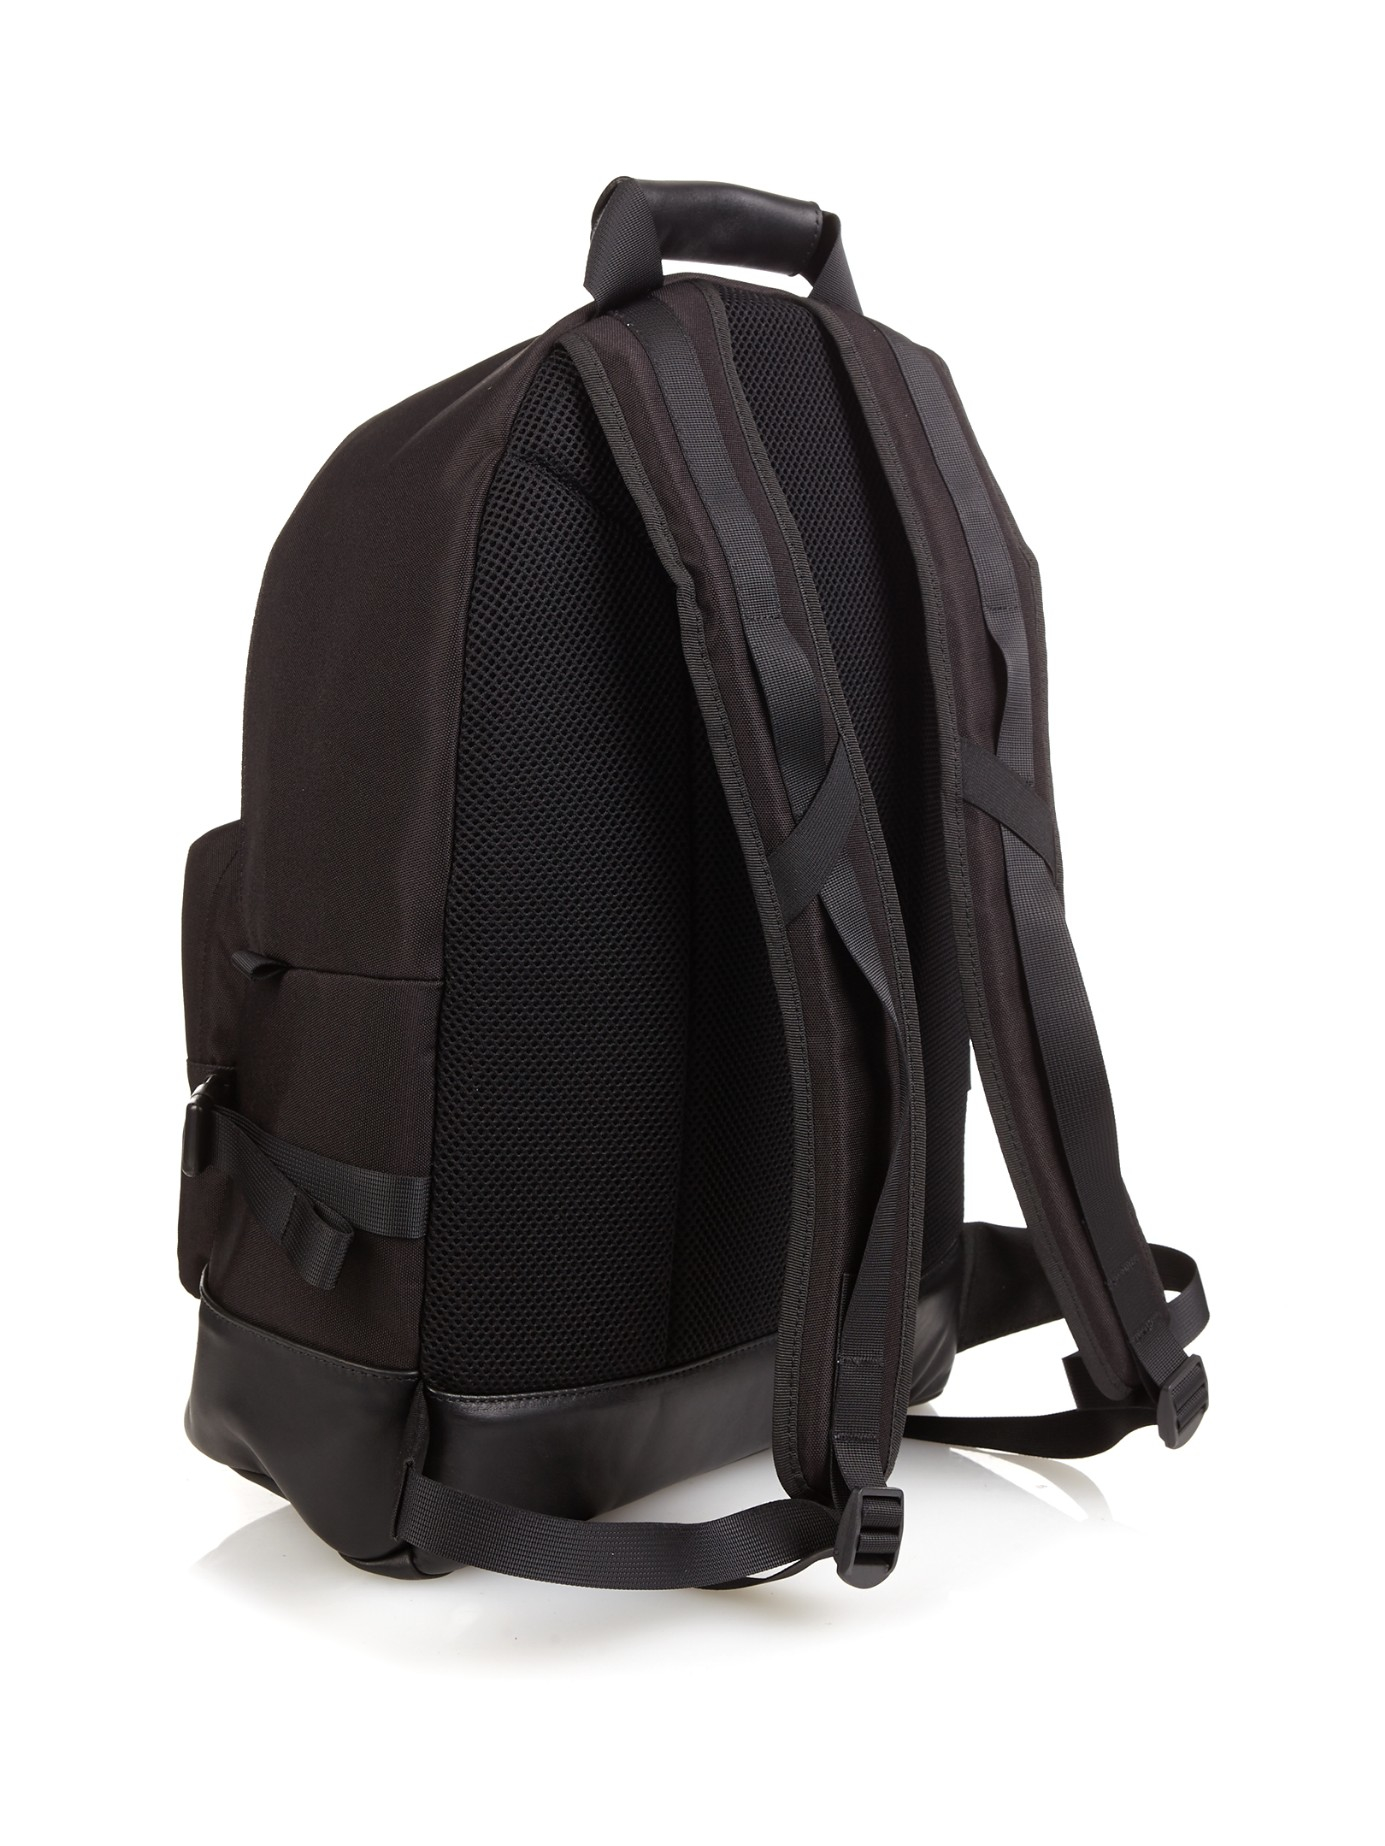 Lyst - AMI Nylon-canvas Backpack in Black for Men b6d1939c12c96